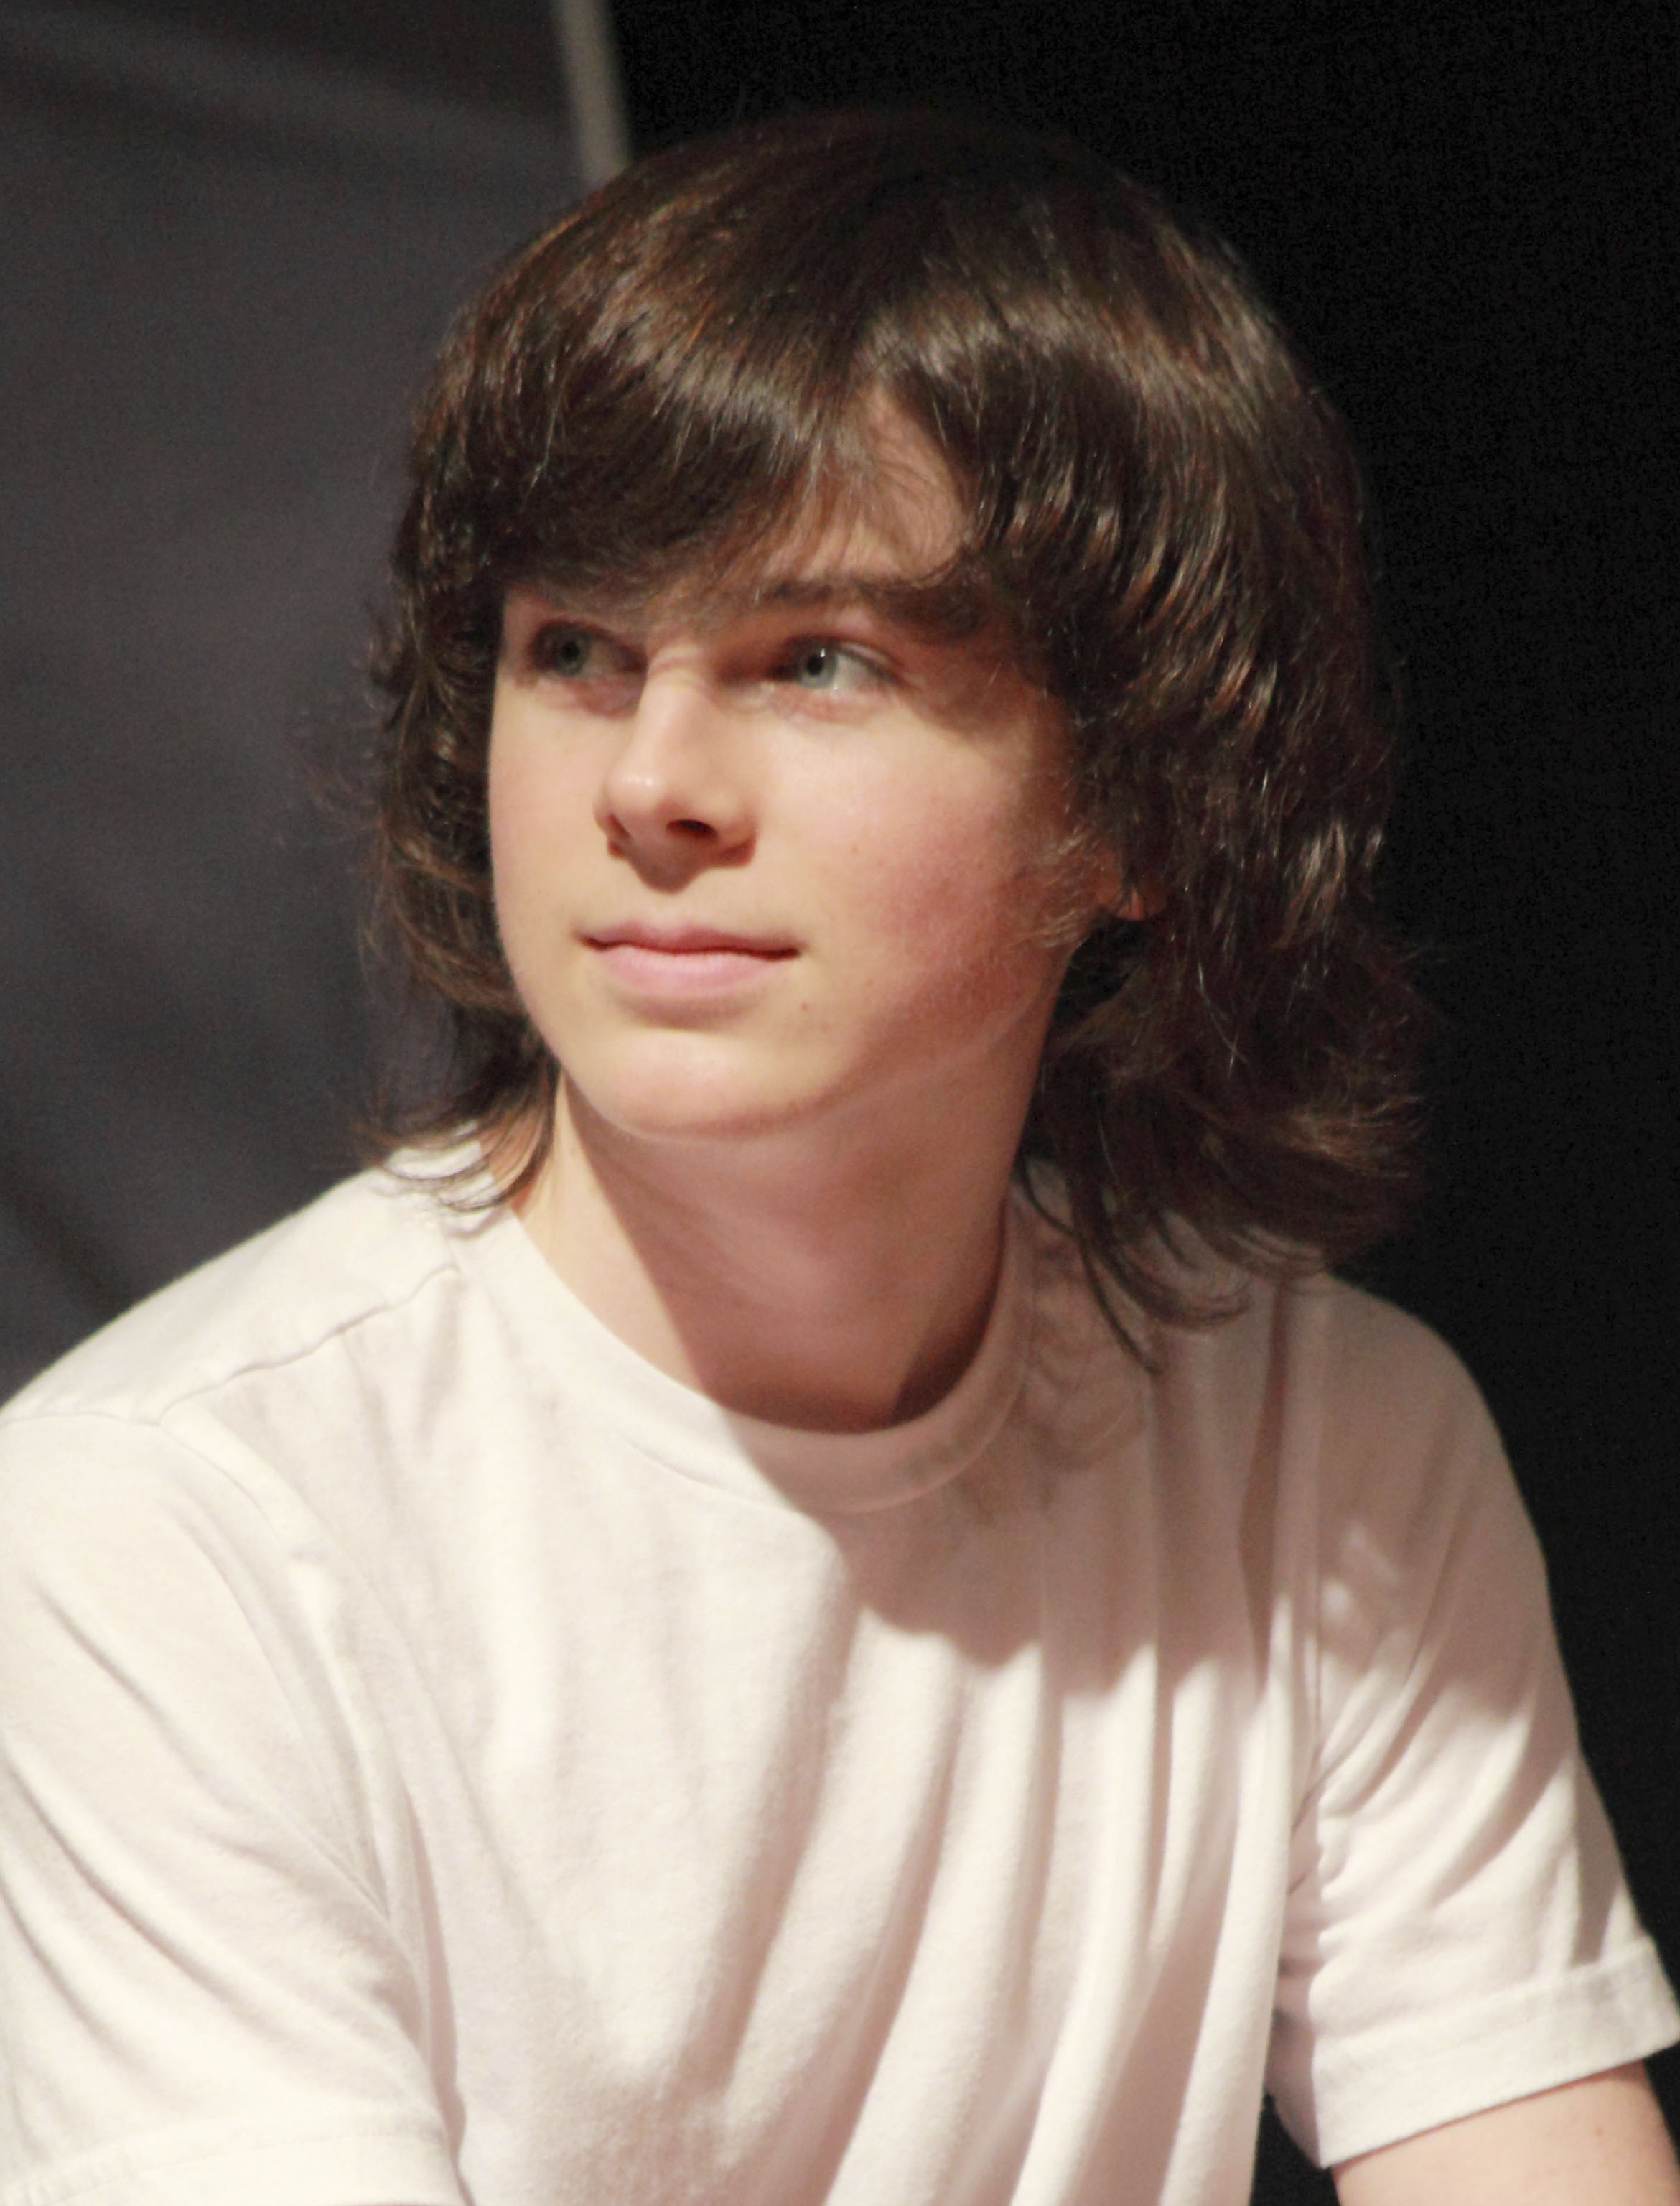 chandler riggs youtubechandler riggs instagram, chandler riggs height, chandler riggs 2017, chandler riggs 2016, chandler riggs vk, chandler riggs and andrew lincoln, chandler riggs snapchat, chandler riggs ask, chandler riggs age, chandler riggs stream, chandler riggs steam, chandler riggs youtube channel, chandler riggs norman reedus, chandler riggs and katelyn nacon, chandler riggs boyu, chandler riggs stunt double, chandler riggs haircut, chandler riggs youtube, chandler riggs carl poppa, chandler riggs league of legends